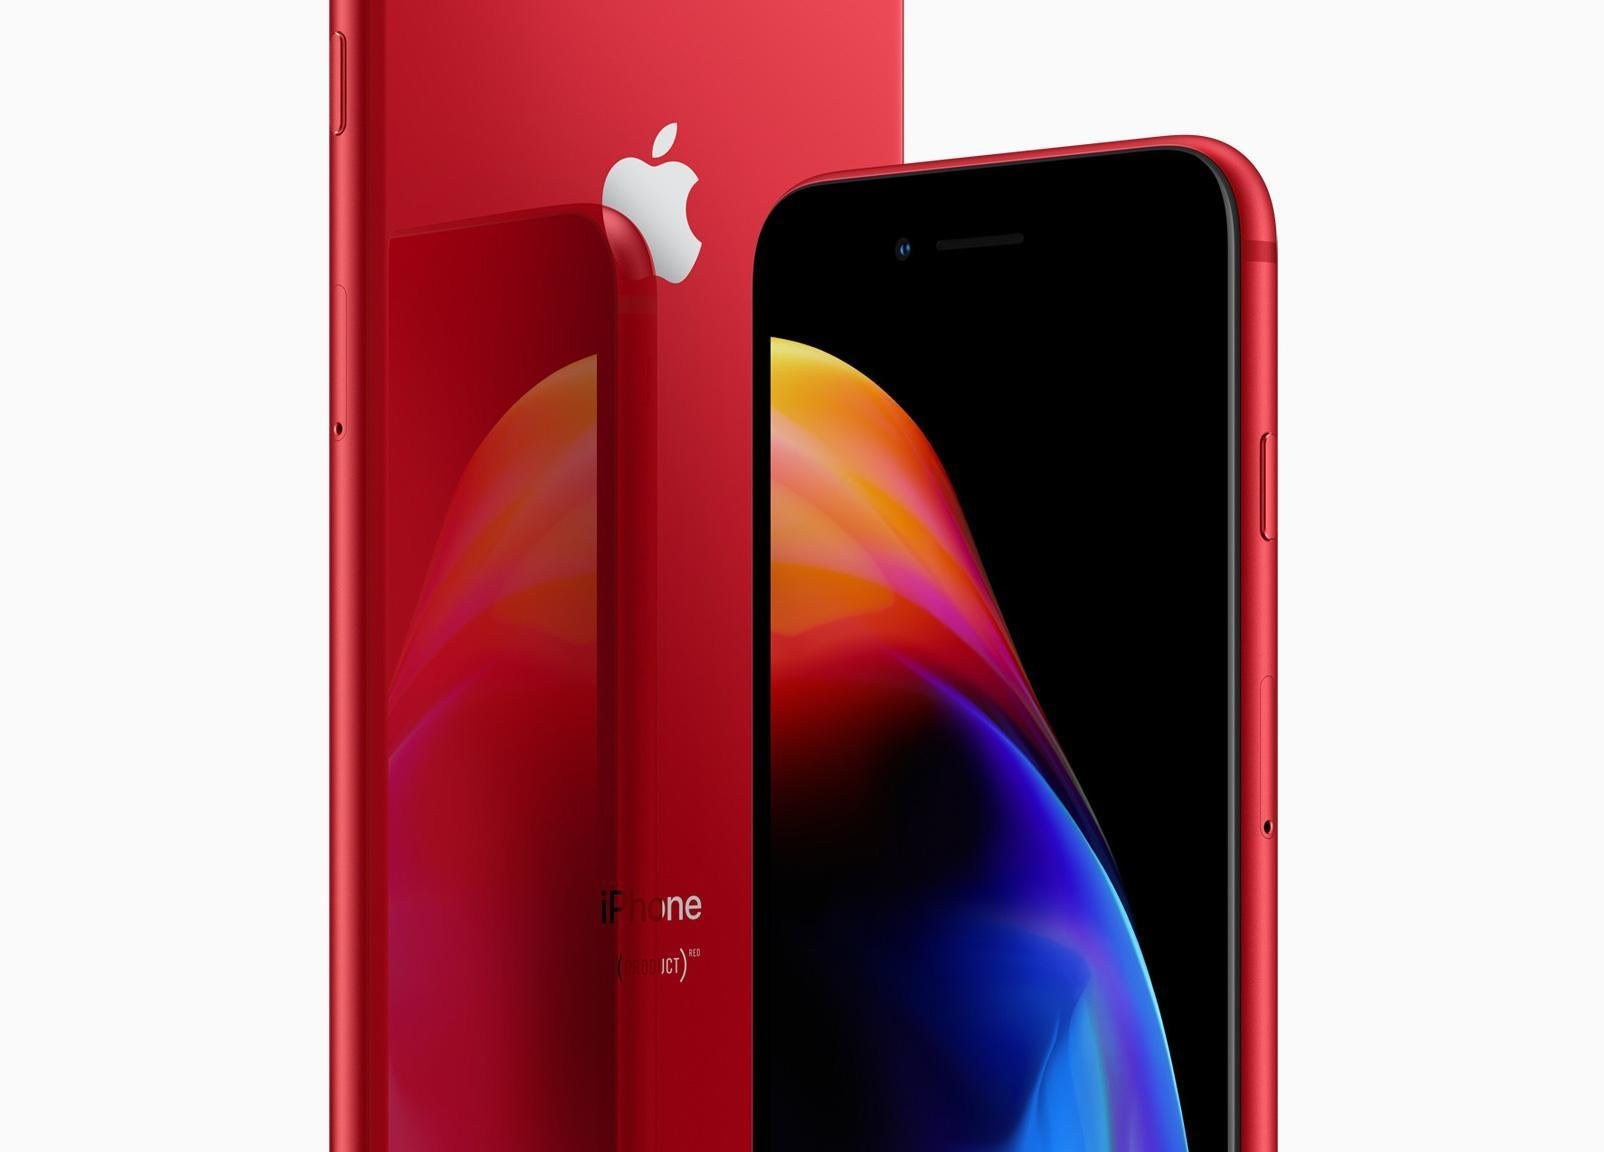 Iphone 8 And Iphone X Release Date Price Features Latest News